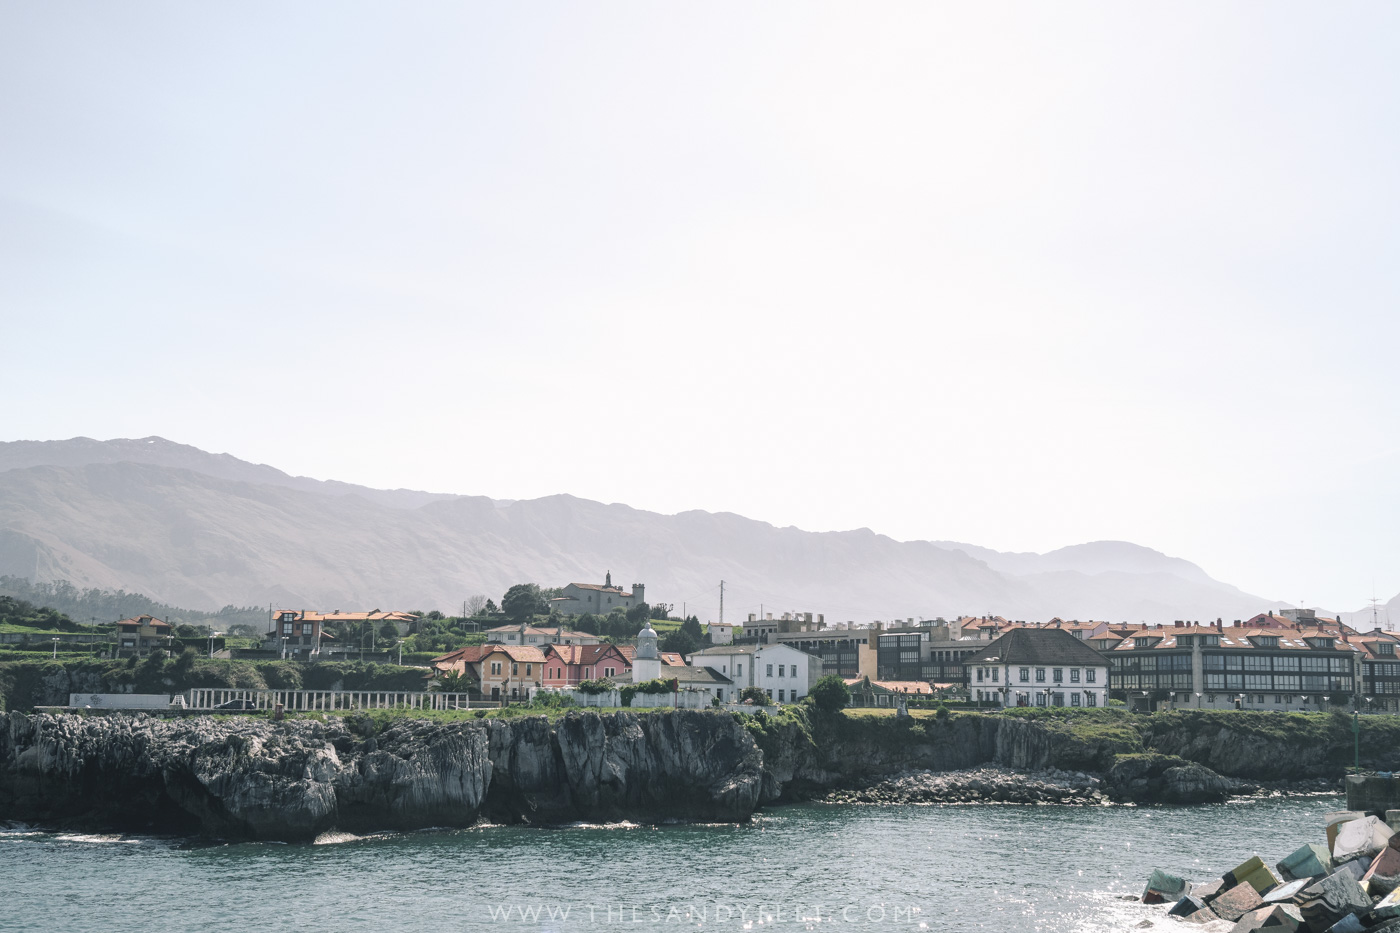 Llanes Waterfront | A Taste Of Northern Spain: 11 Incredible Places To Visit In Asturias | The Best Things To Do In Asturias, Spain